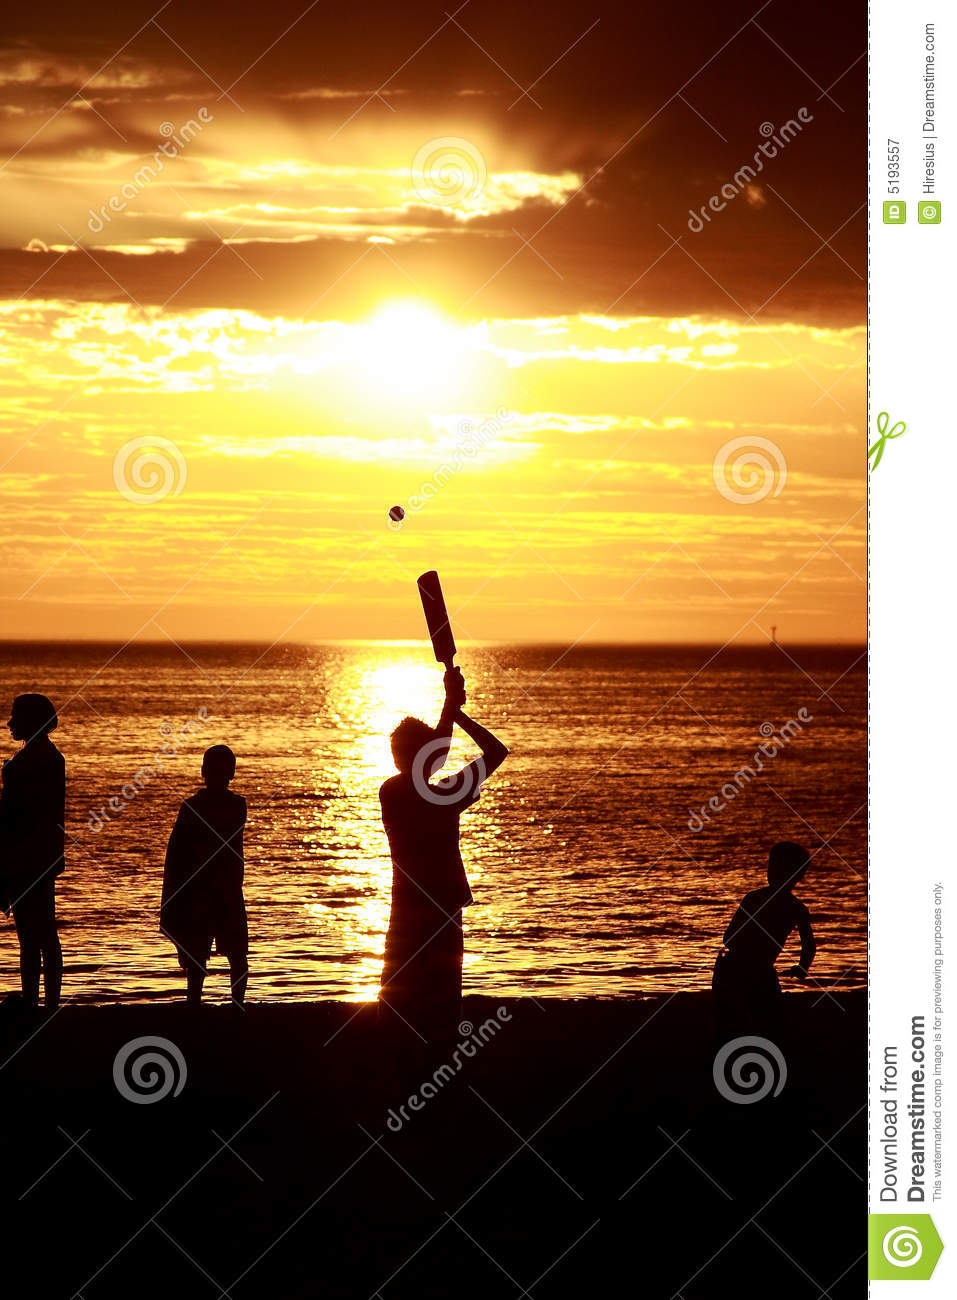 how to play beach cricket